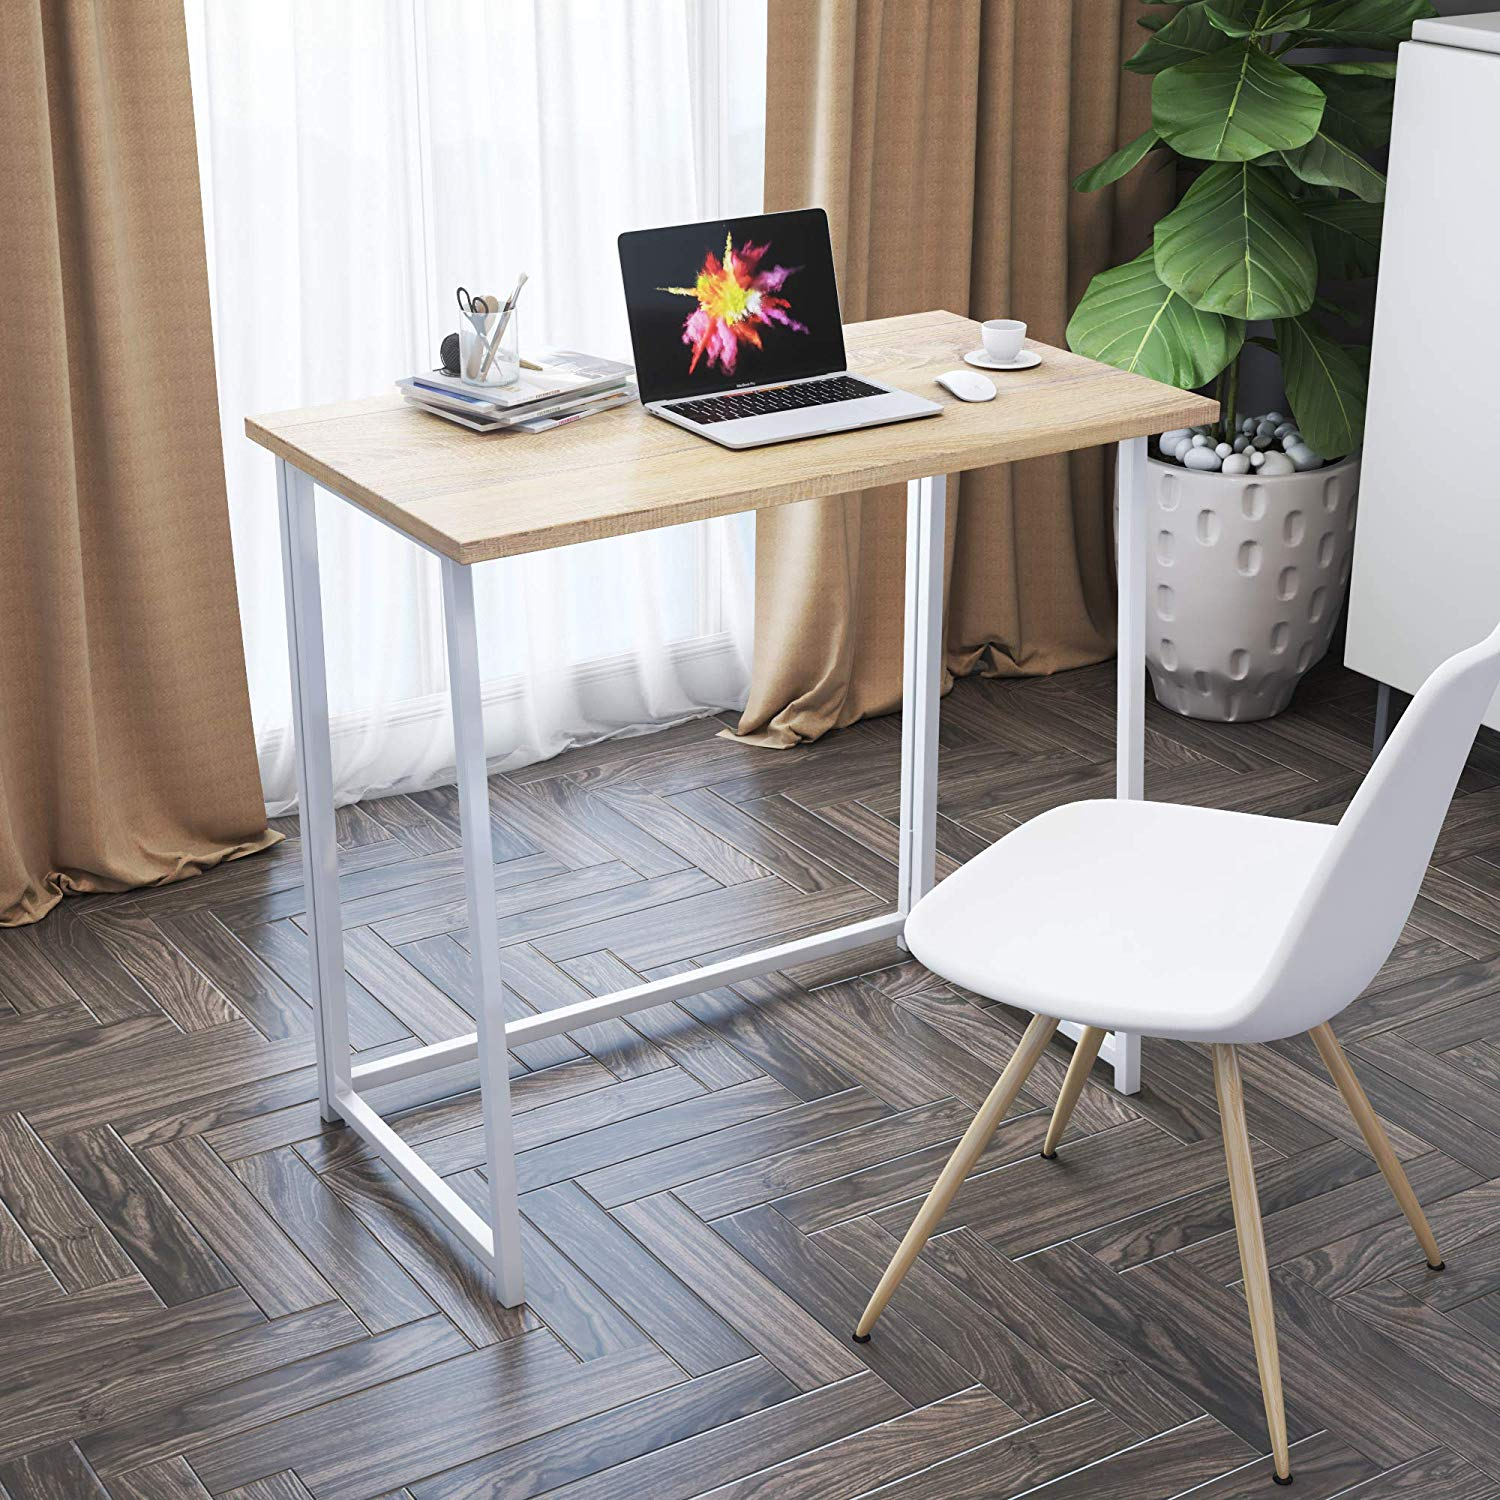 Details about Folding Desk Study Coffee Table Foldable Computer Desk Laptop  Office Home Wooden